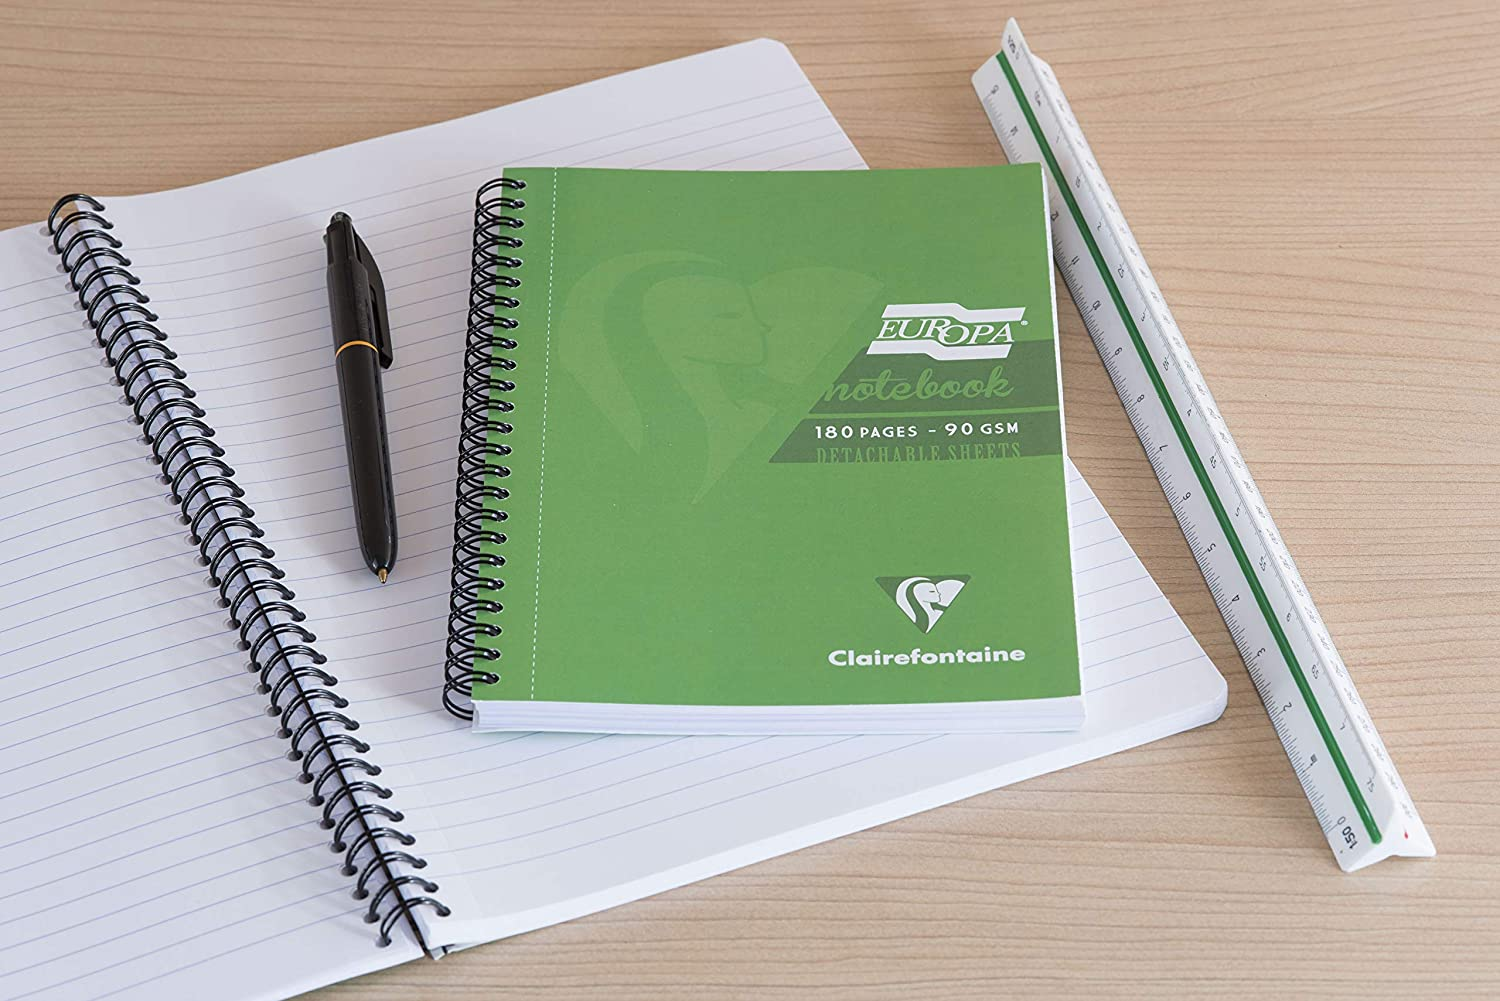 Clairefontaine Europa Notebook 90 gm A4 180 pages- Purple